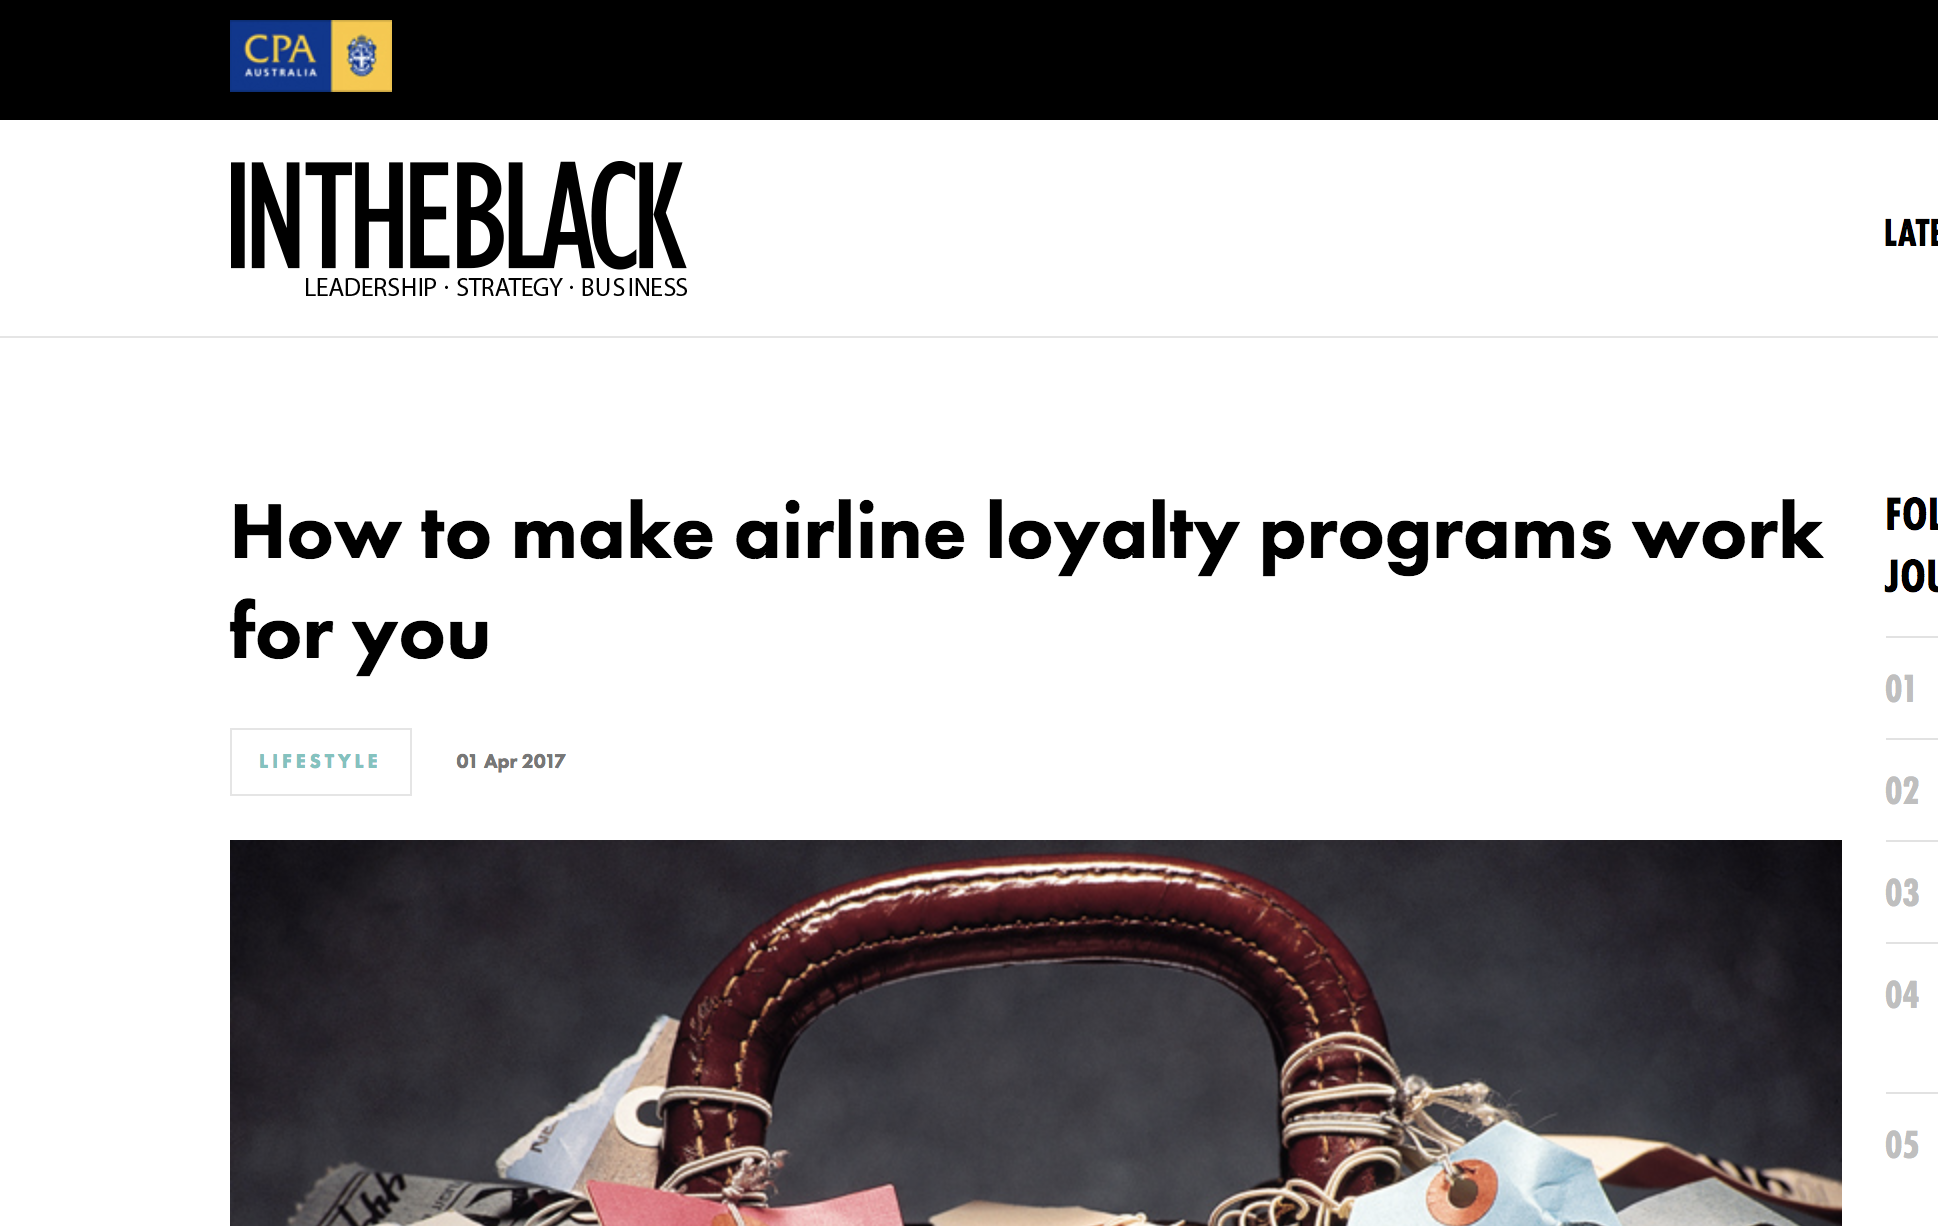 INTHEBLACK - How to make loyalty programs work for you